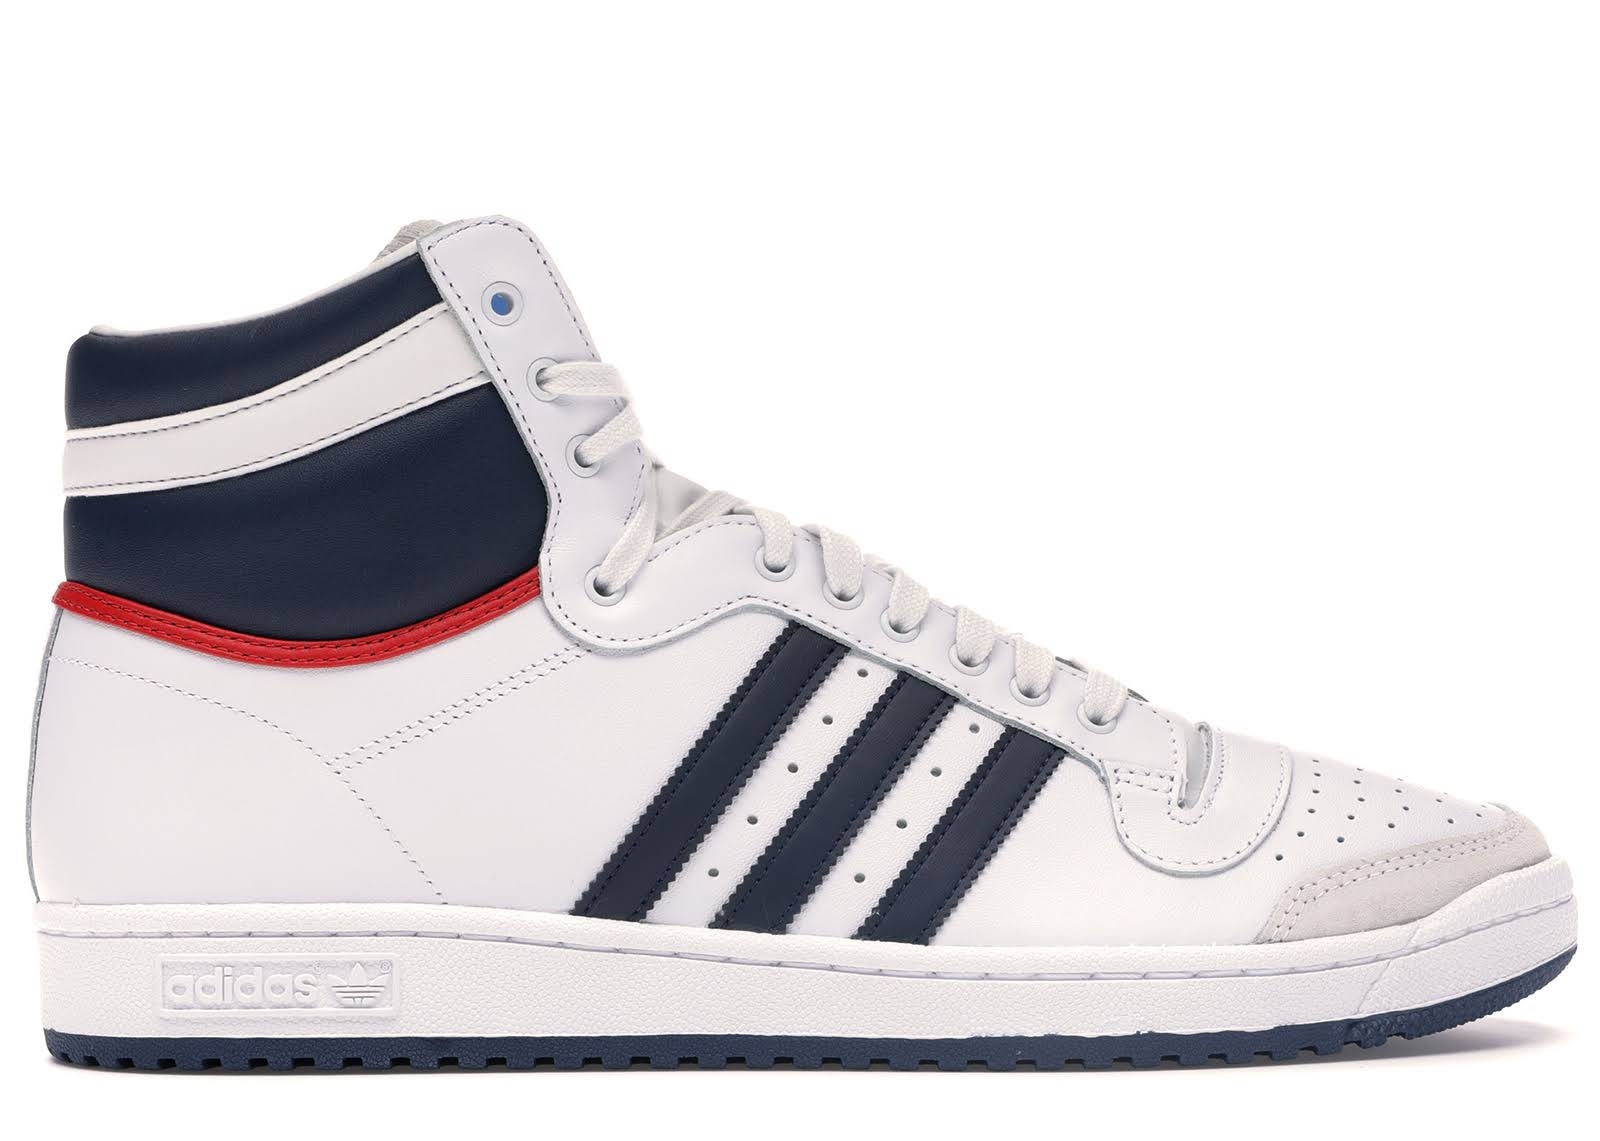 Adidas Top Ten Hi 40th Anniversary (2019)